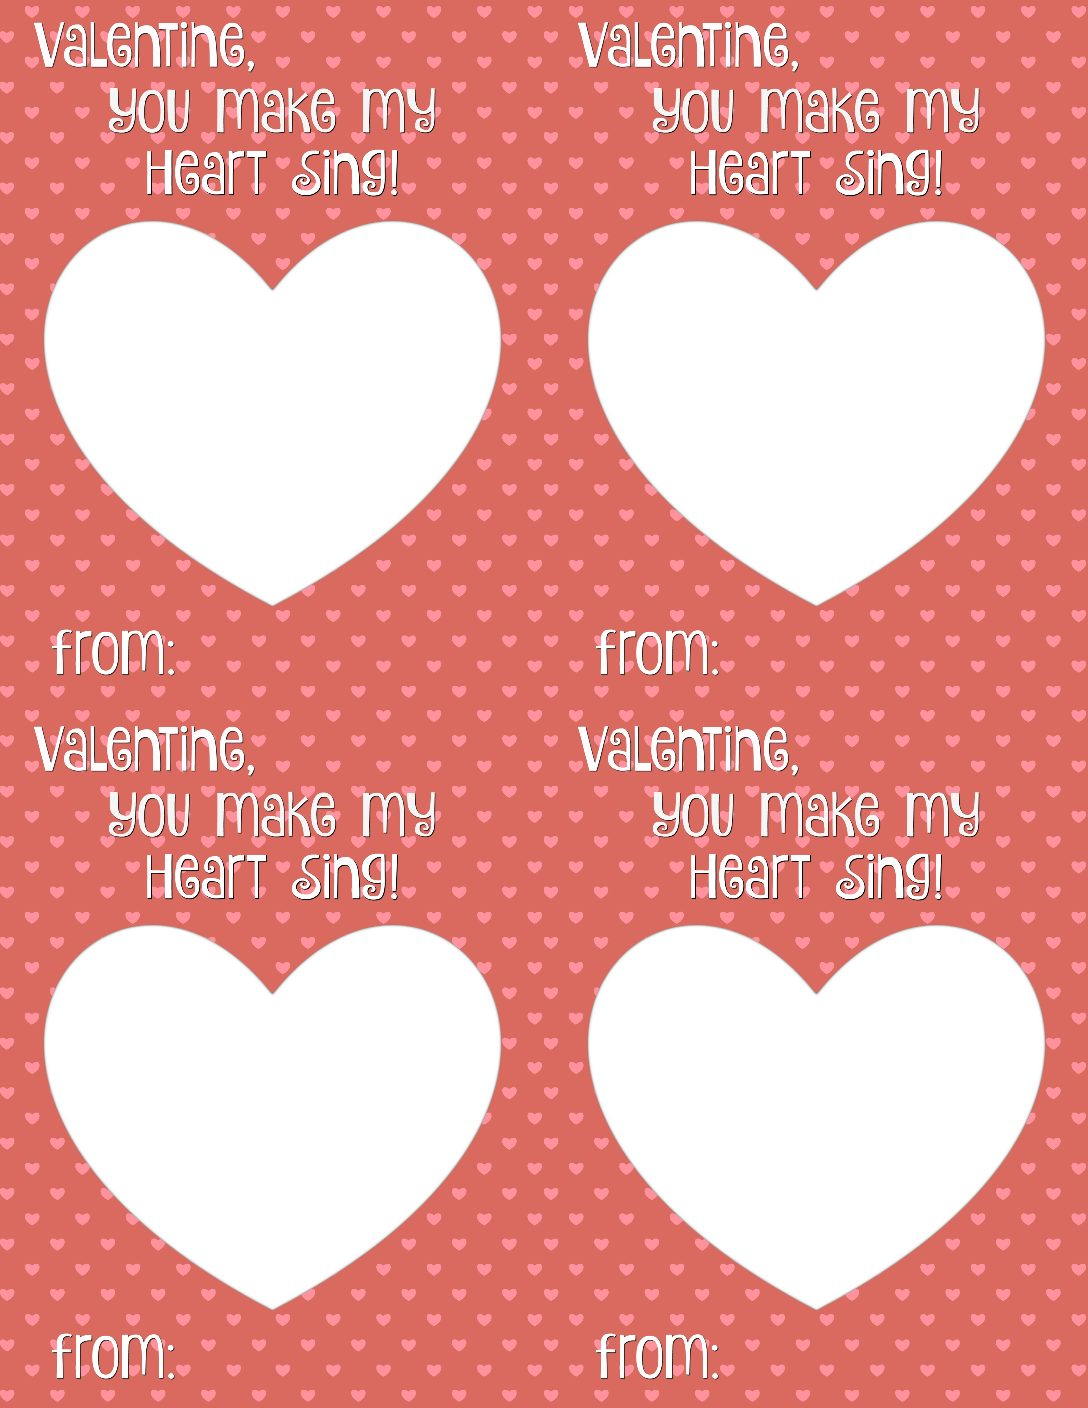 You Make My Heart Sing Valentine Card Printable Smashed Peas Carrots